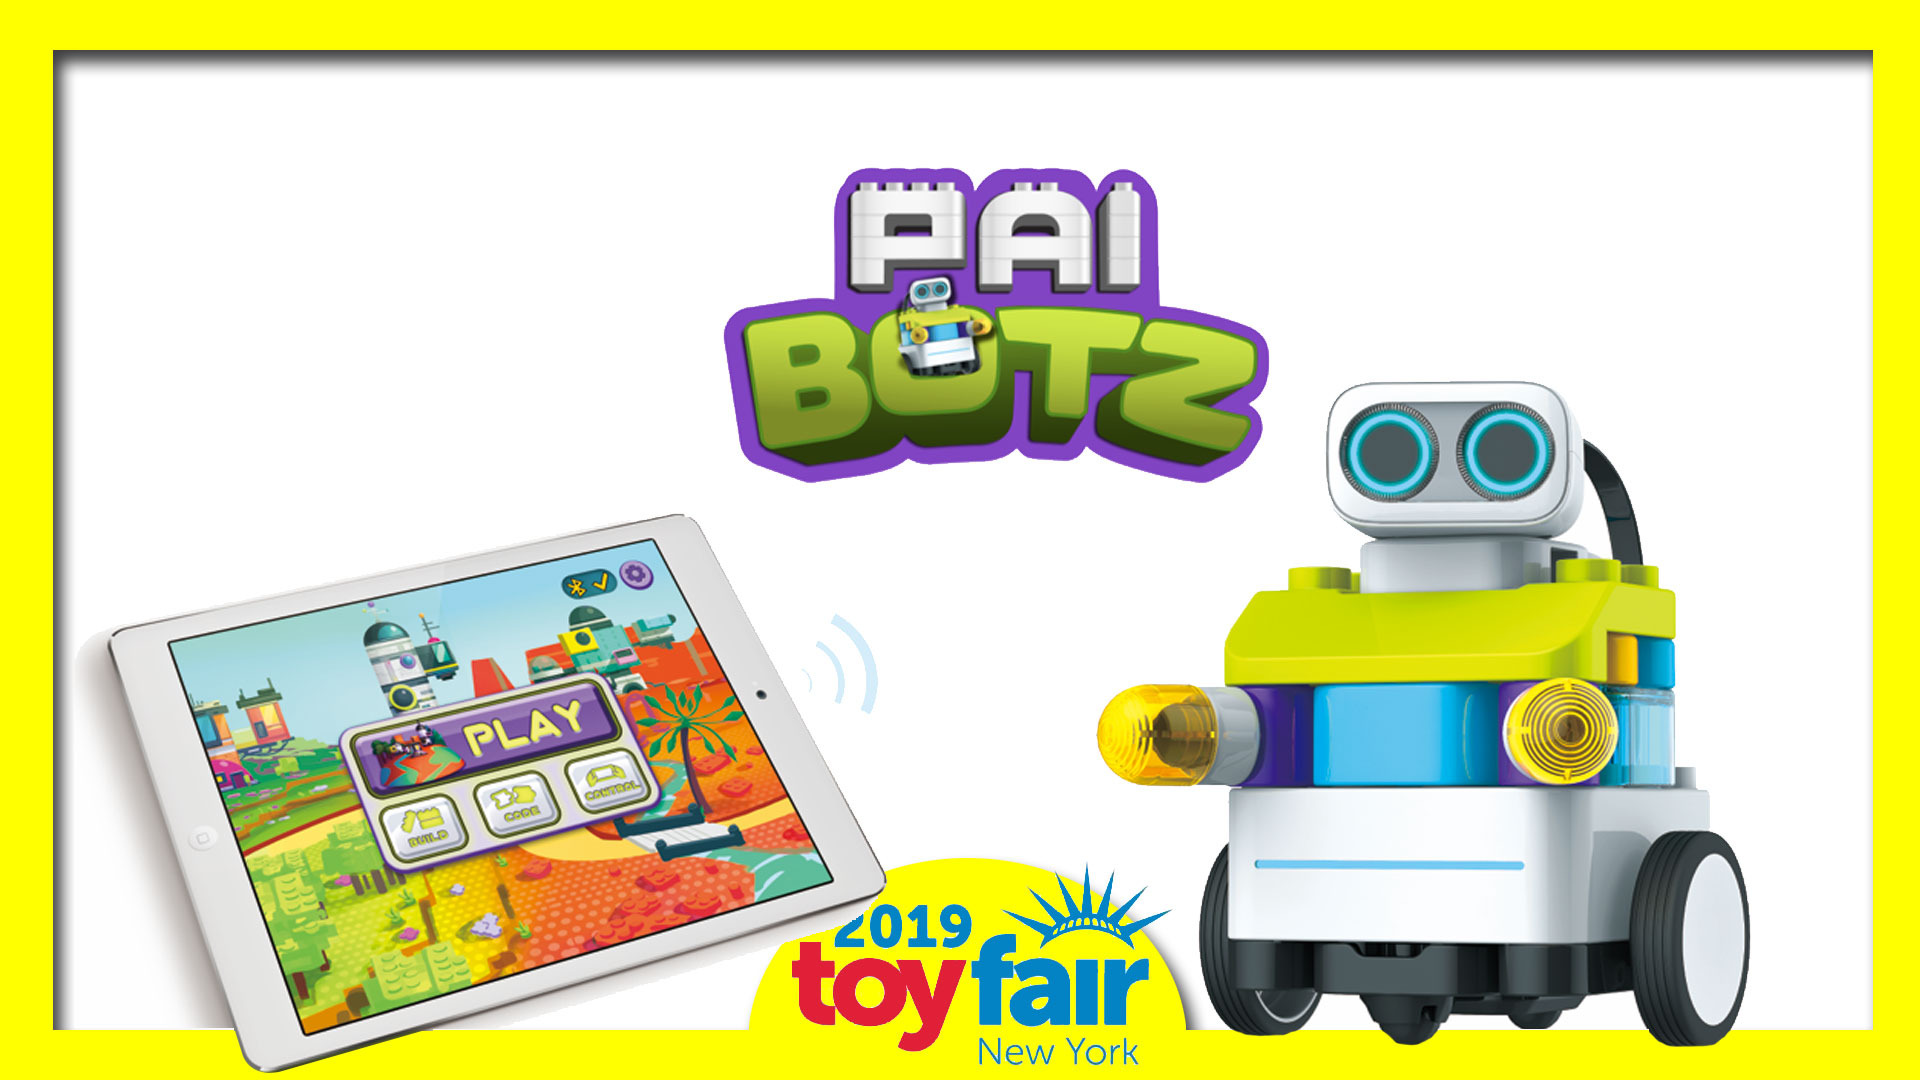 Paibotz @Toyfair 2019